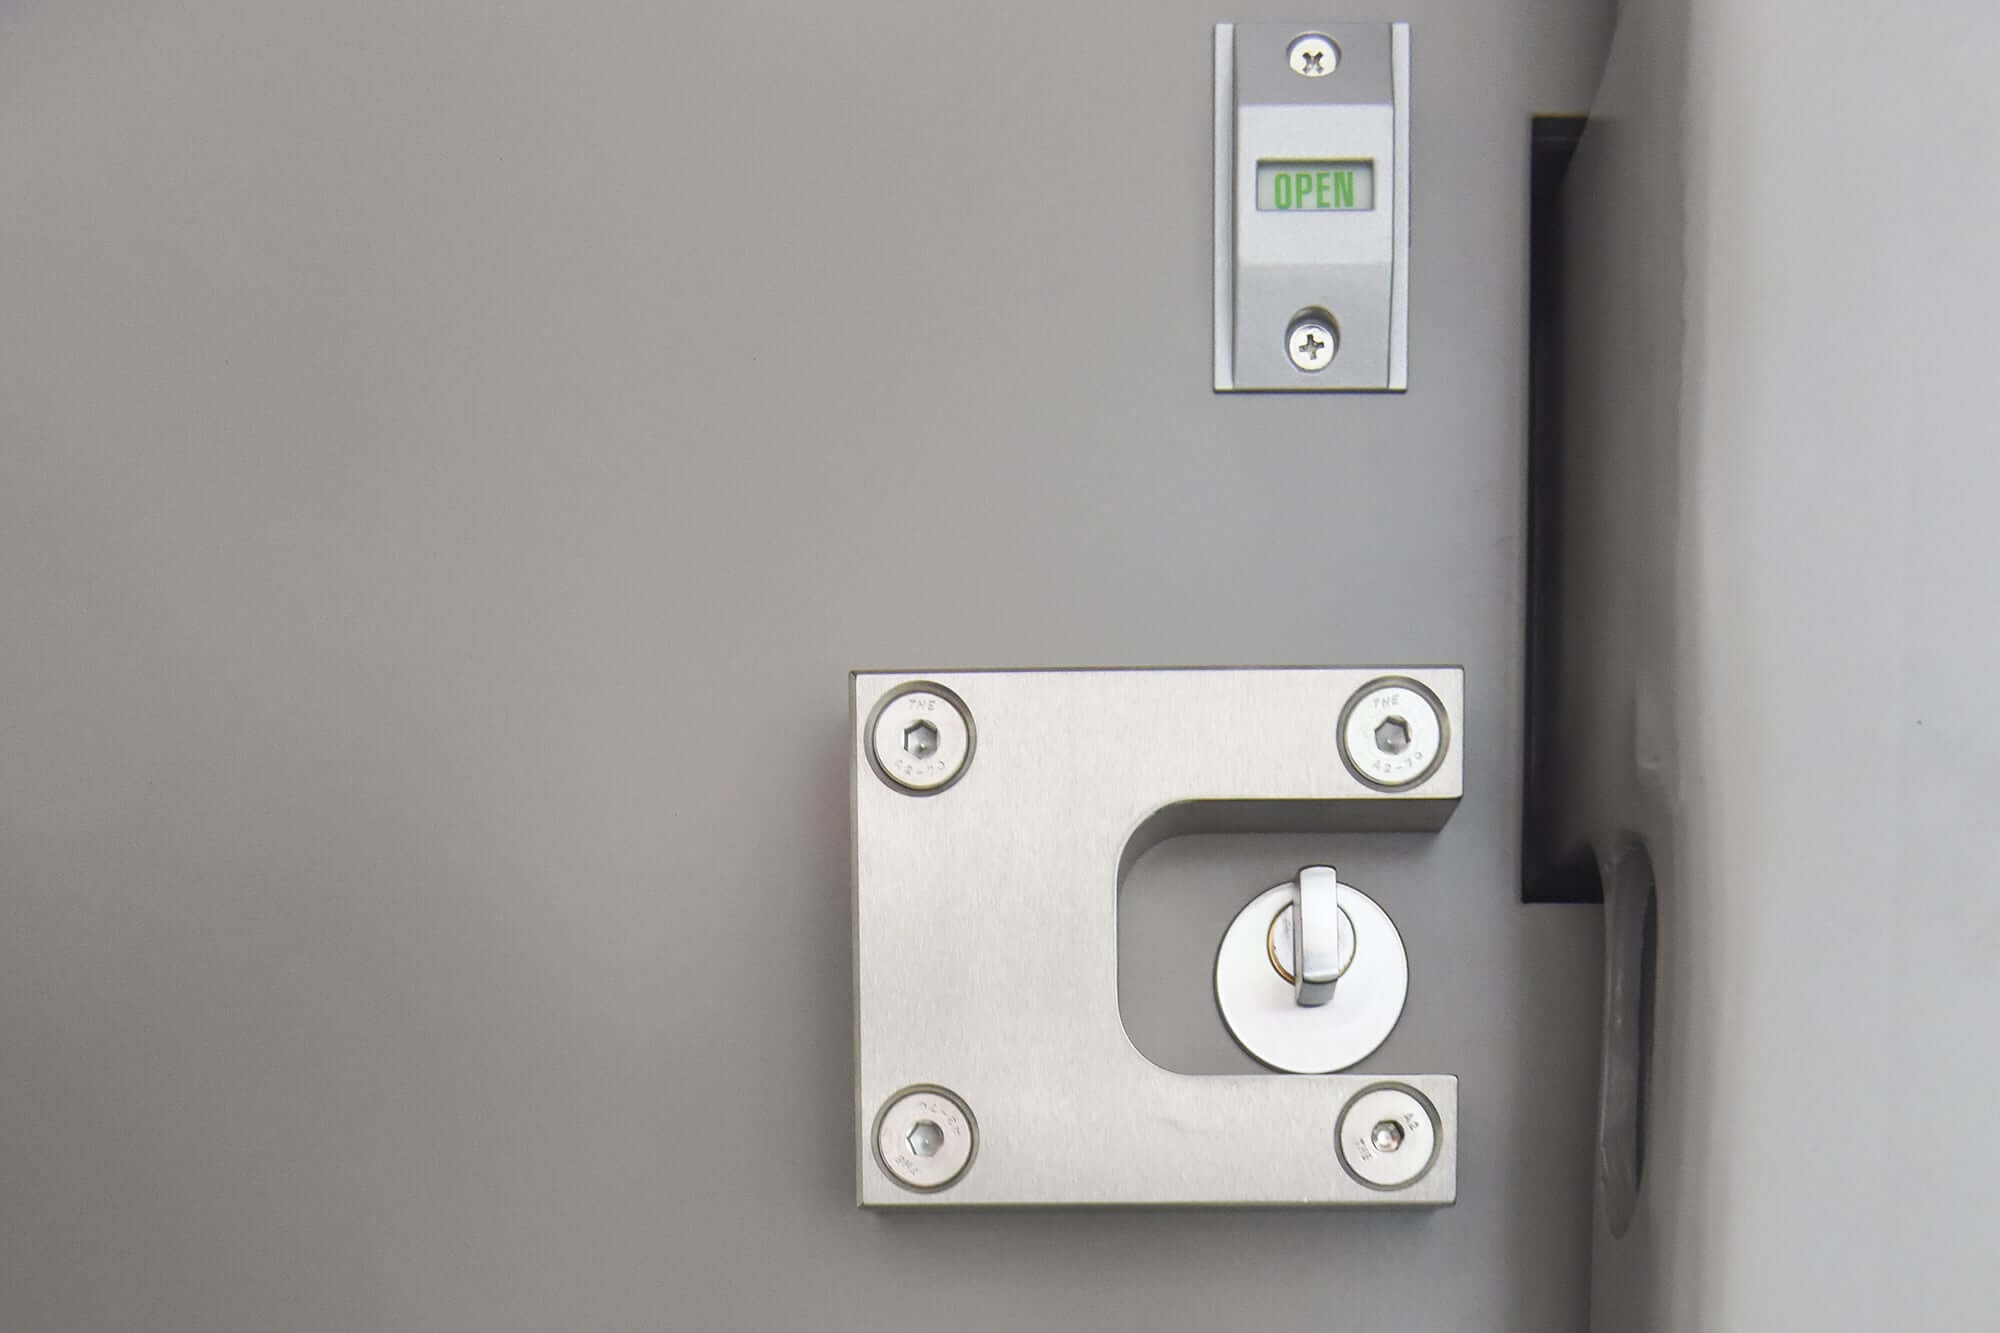 Thumbturn Protector & Maximum Security Doors - DOS 60 Minute FE/BR u0026 Fire - Ross Technology